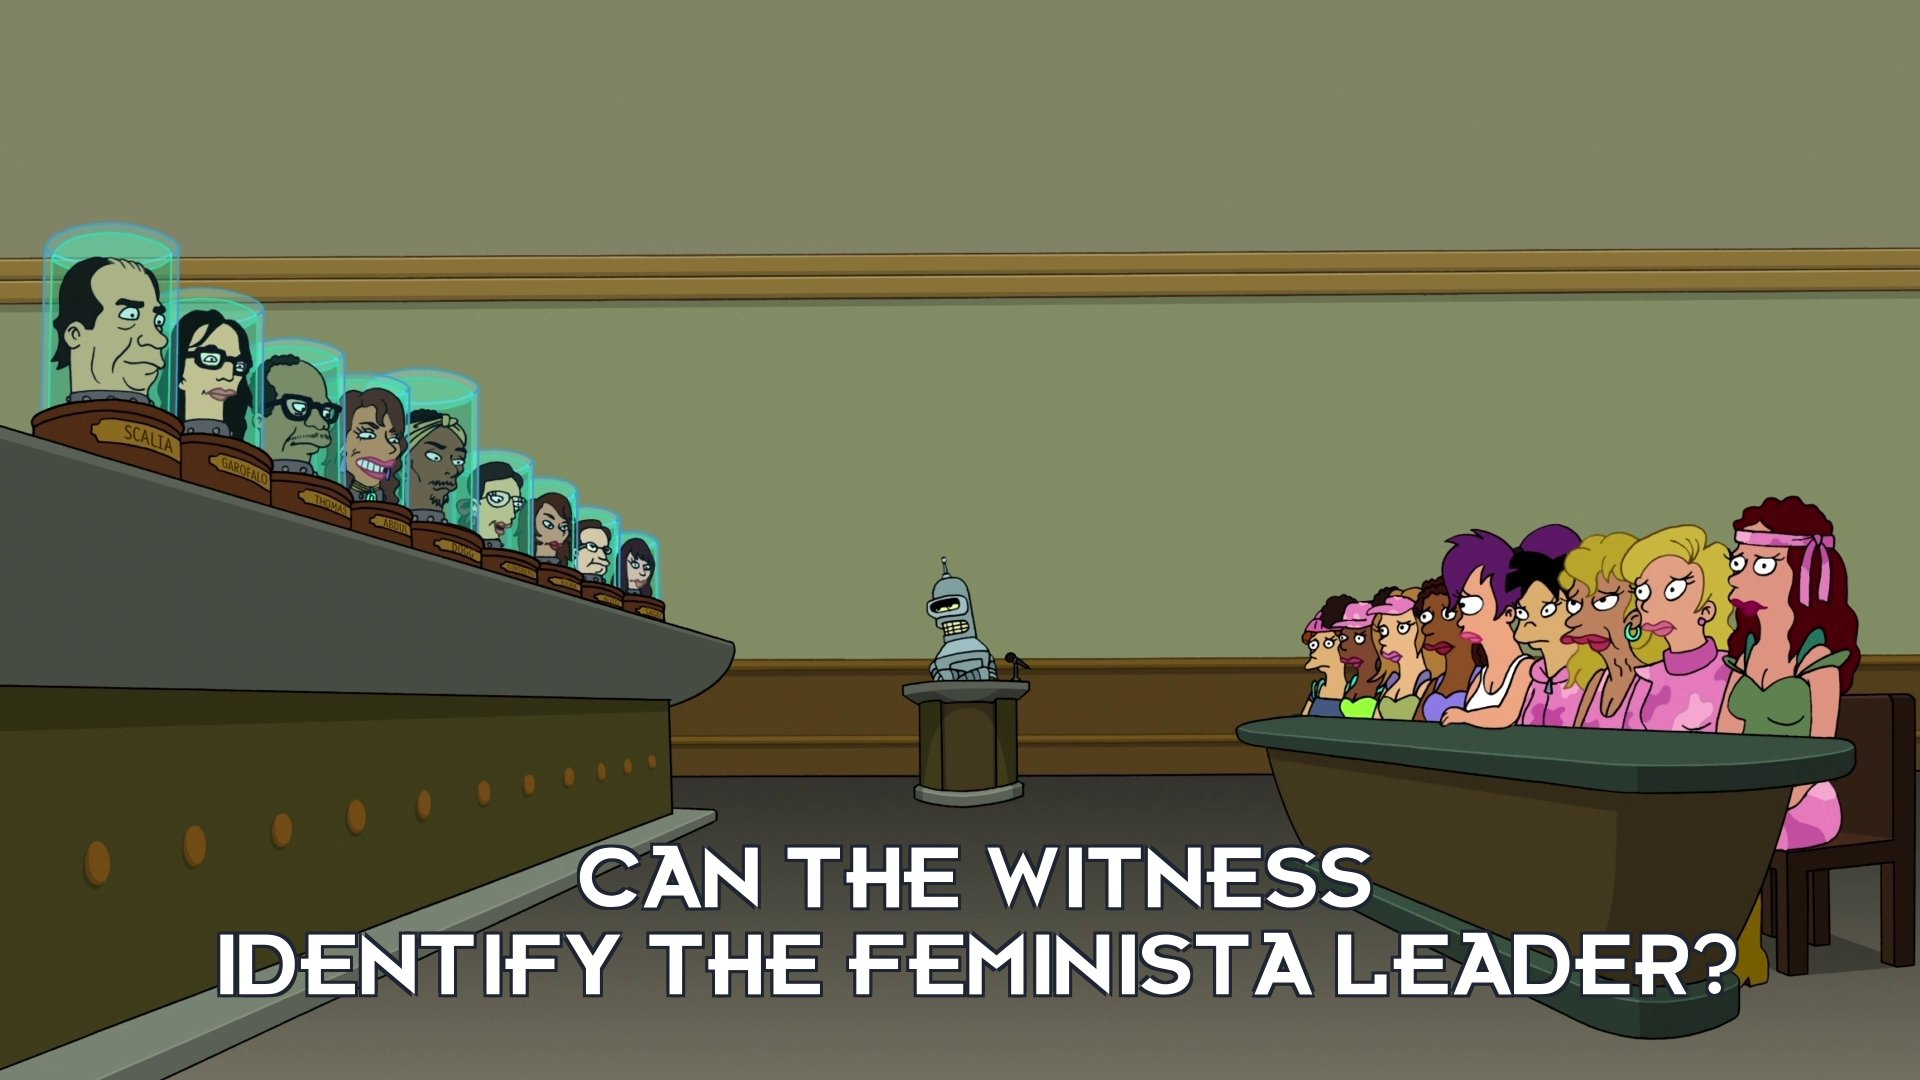 Ruth Bader Ginsburg's head: Can the witness identify the feminista leader?